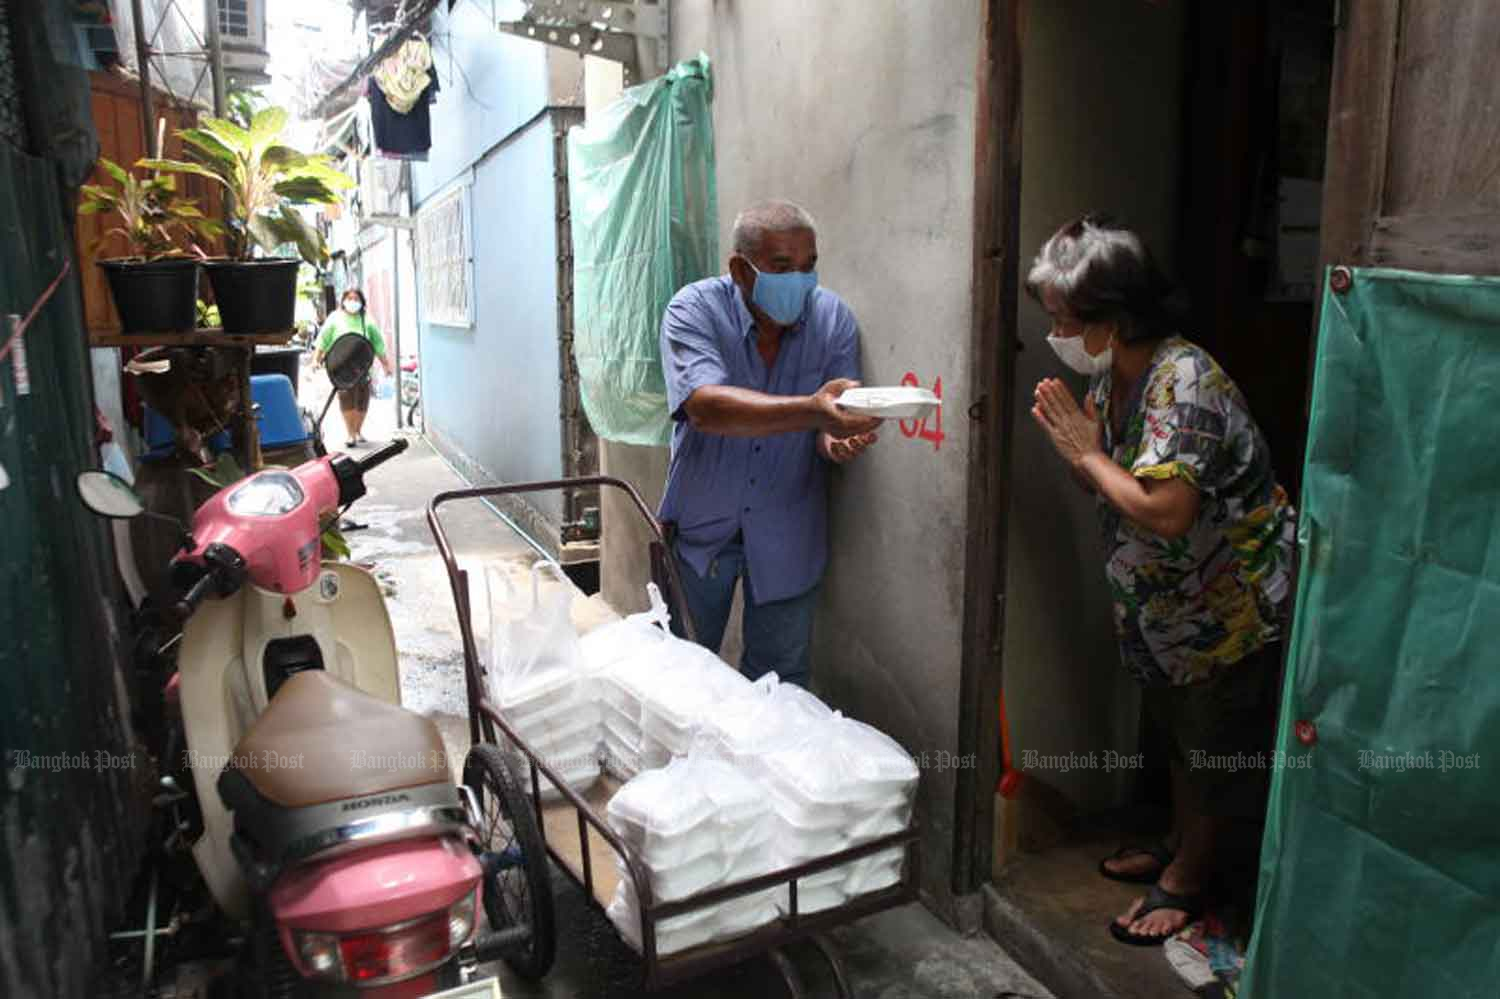 A community leader in Klong Toey district hands out a lunch box to a local resident. The food-sharing project, funded by Muang Thai Insurance Plc, is aimed at helping vulnerable individuals affected by the Covid-19 pandemic. Arnun Chonmahatrakool